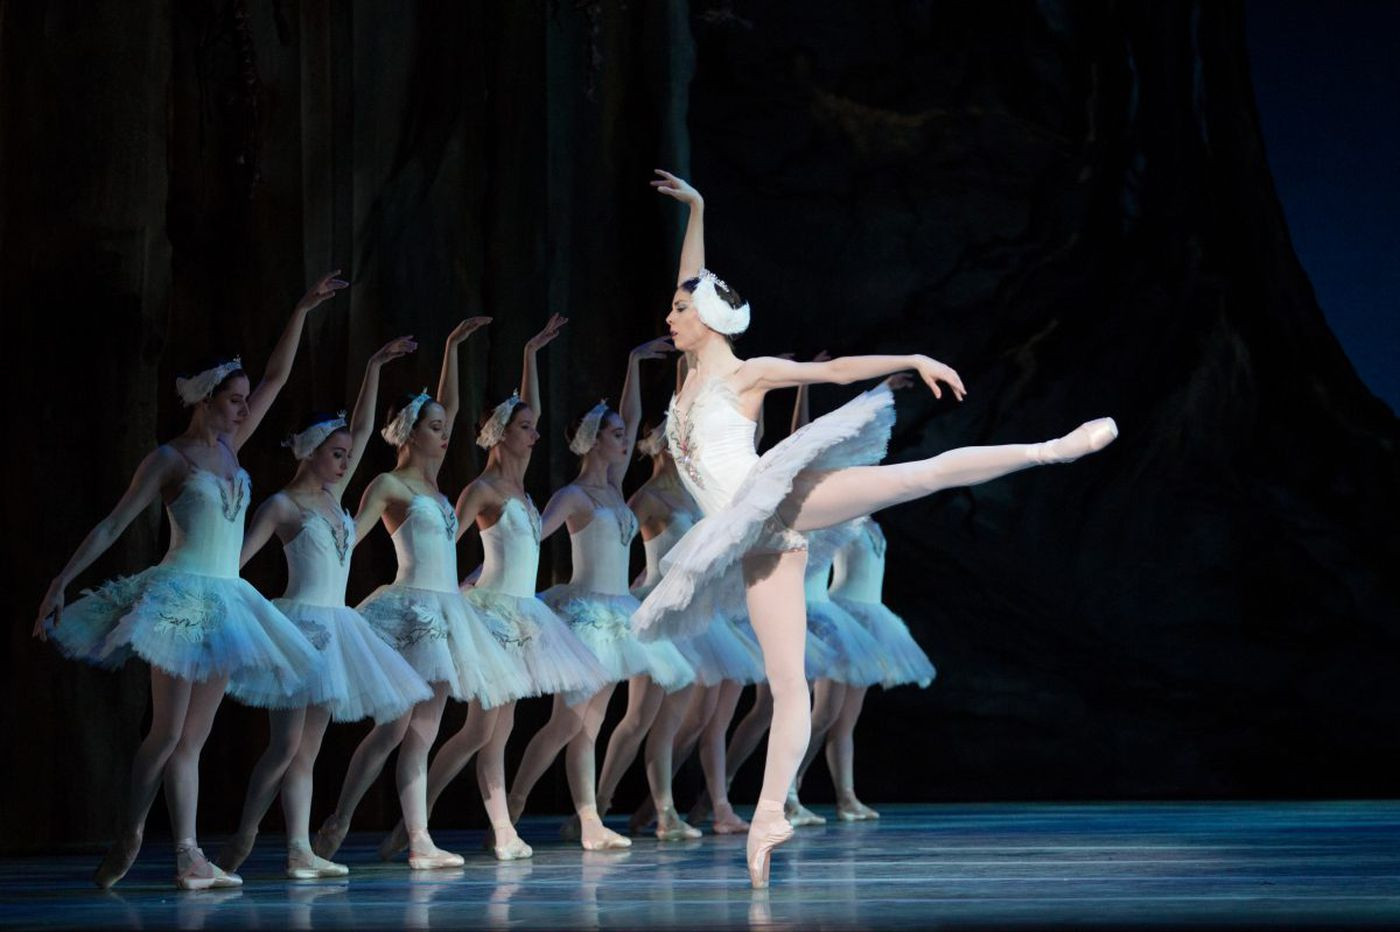 Pennsylvania Ballet 'Swan Lake': Beauty without passion